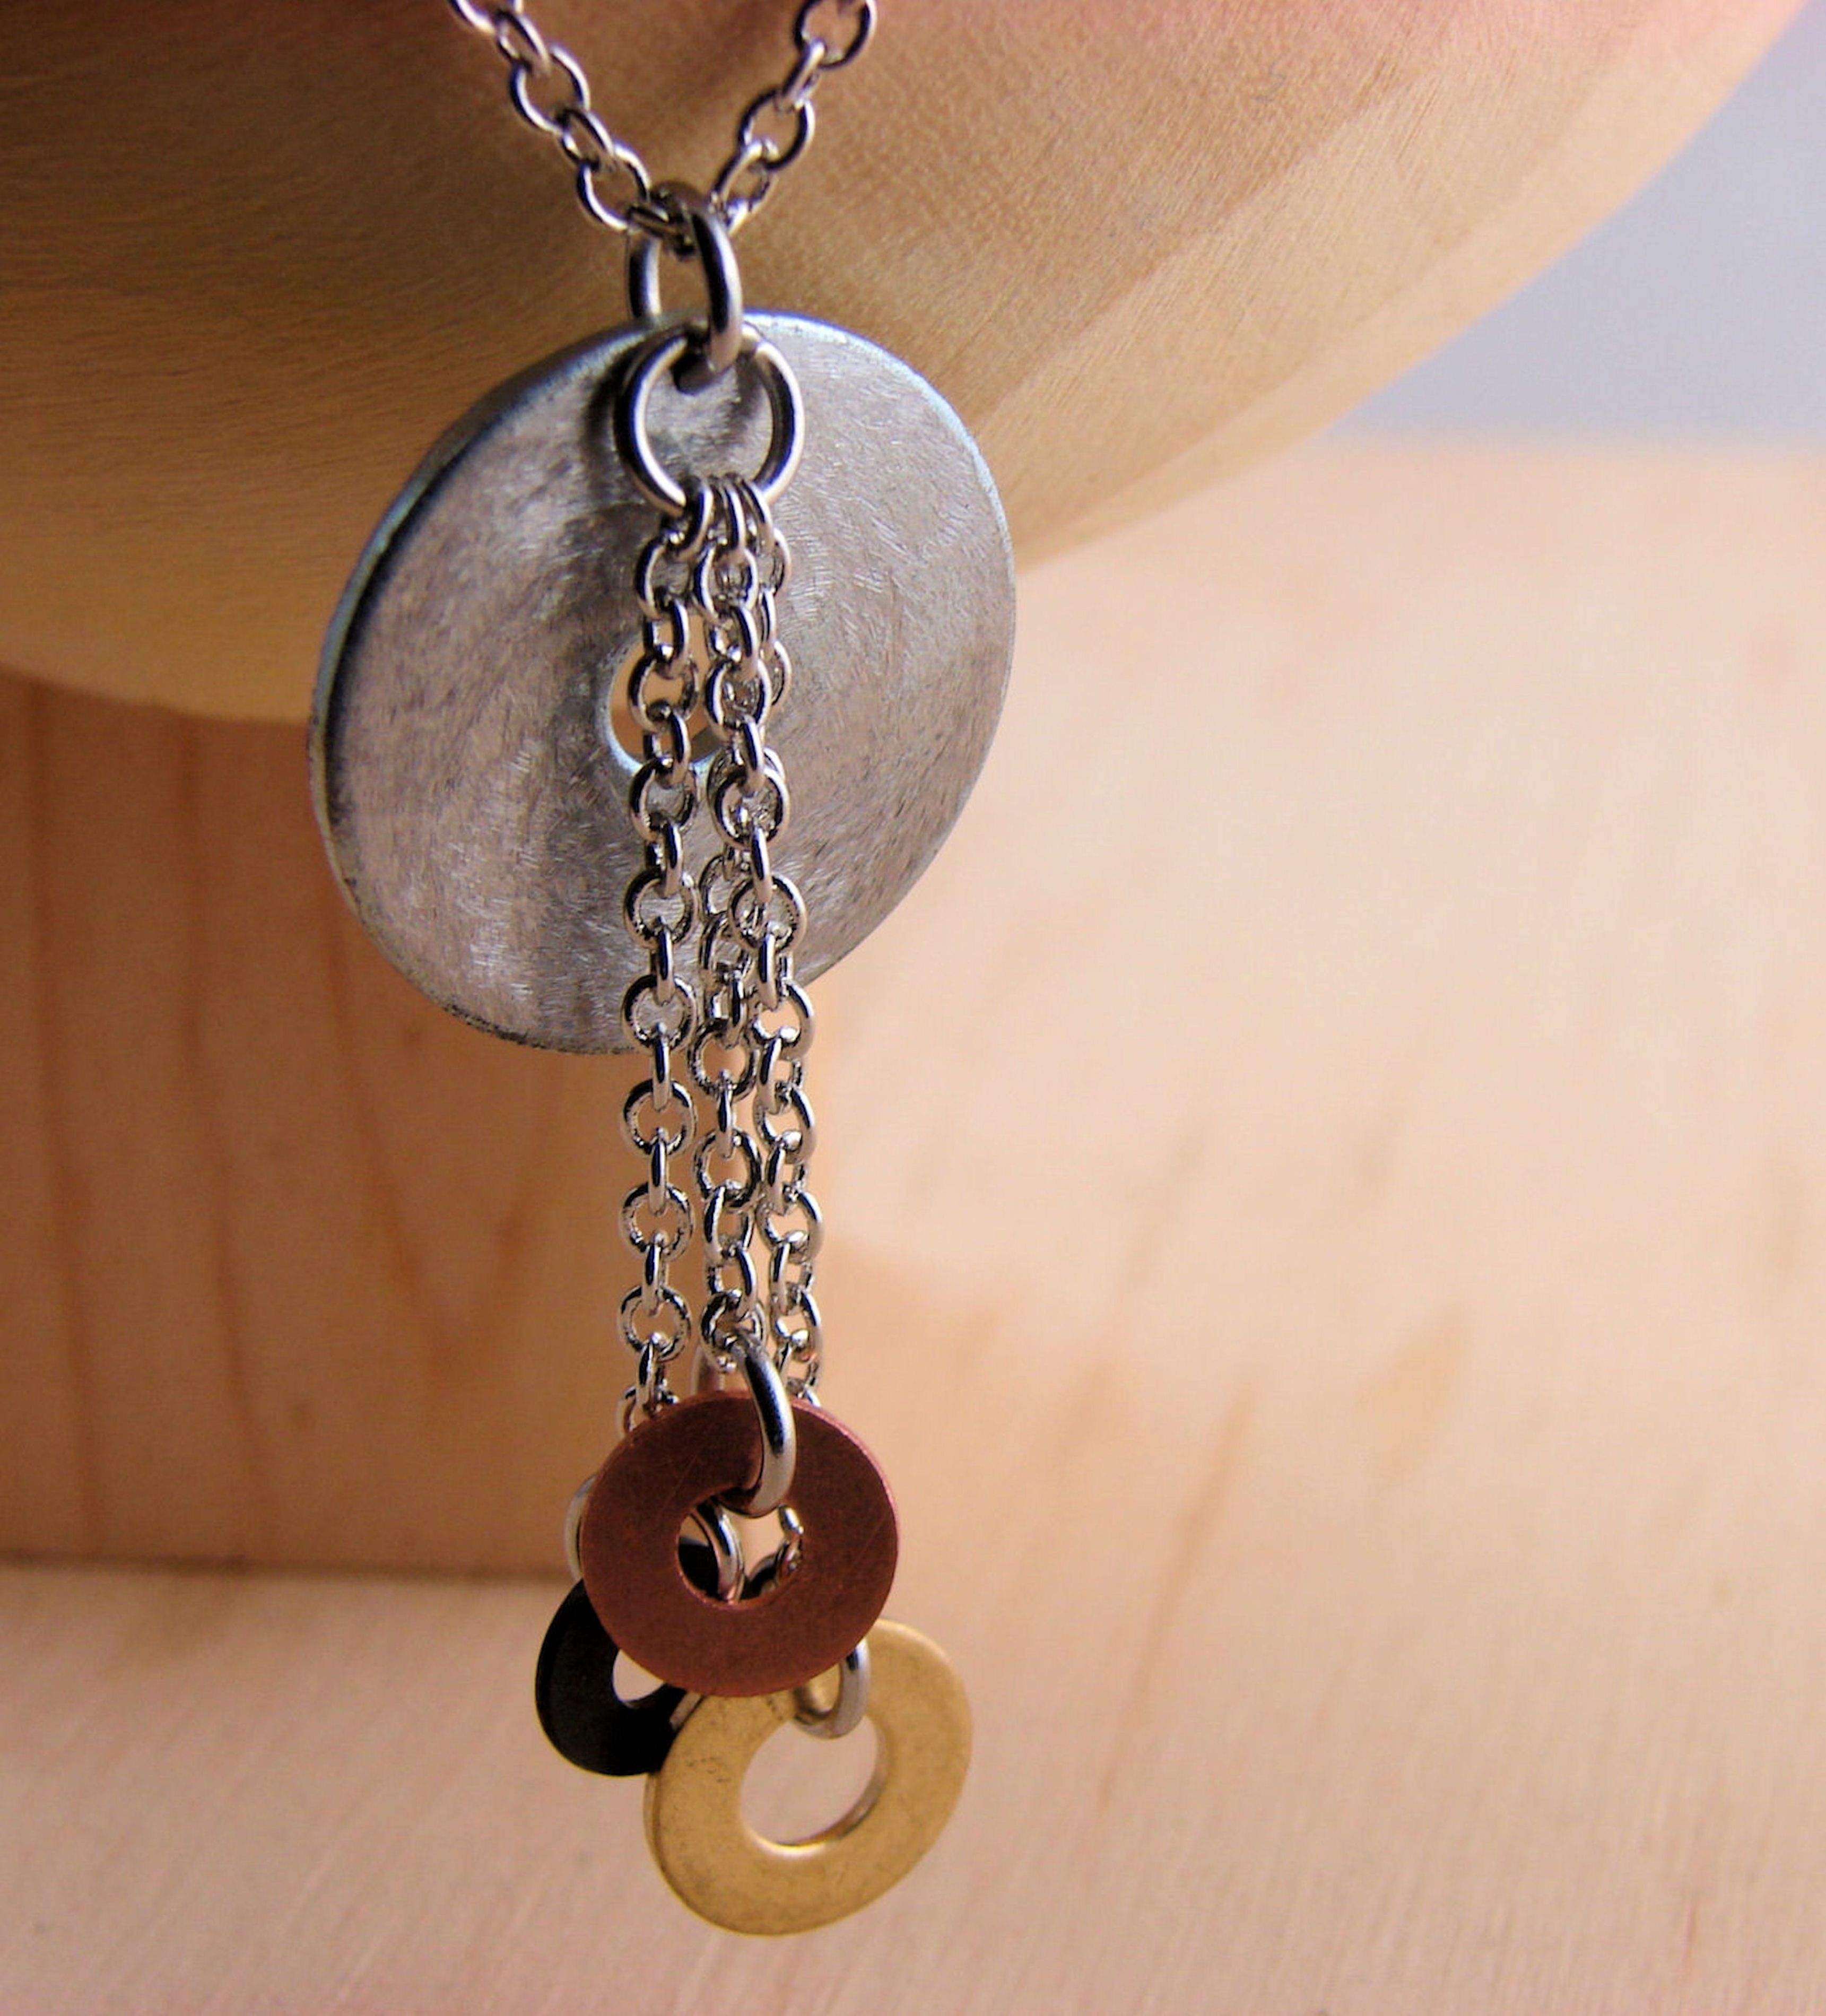 Pendant Necklace Mixed Metal Hardware Jewelry